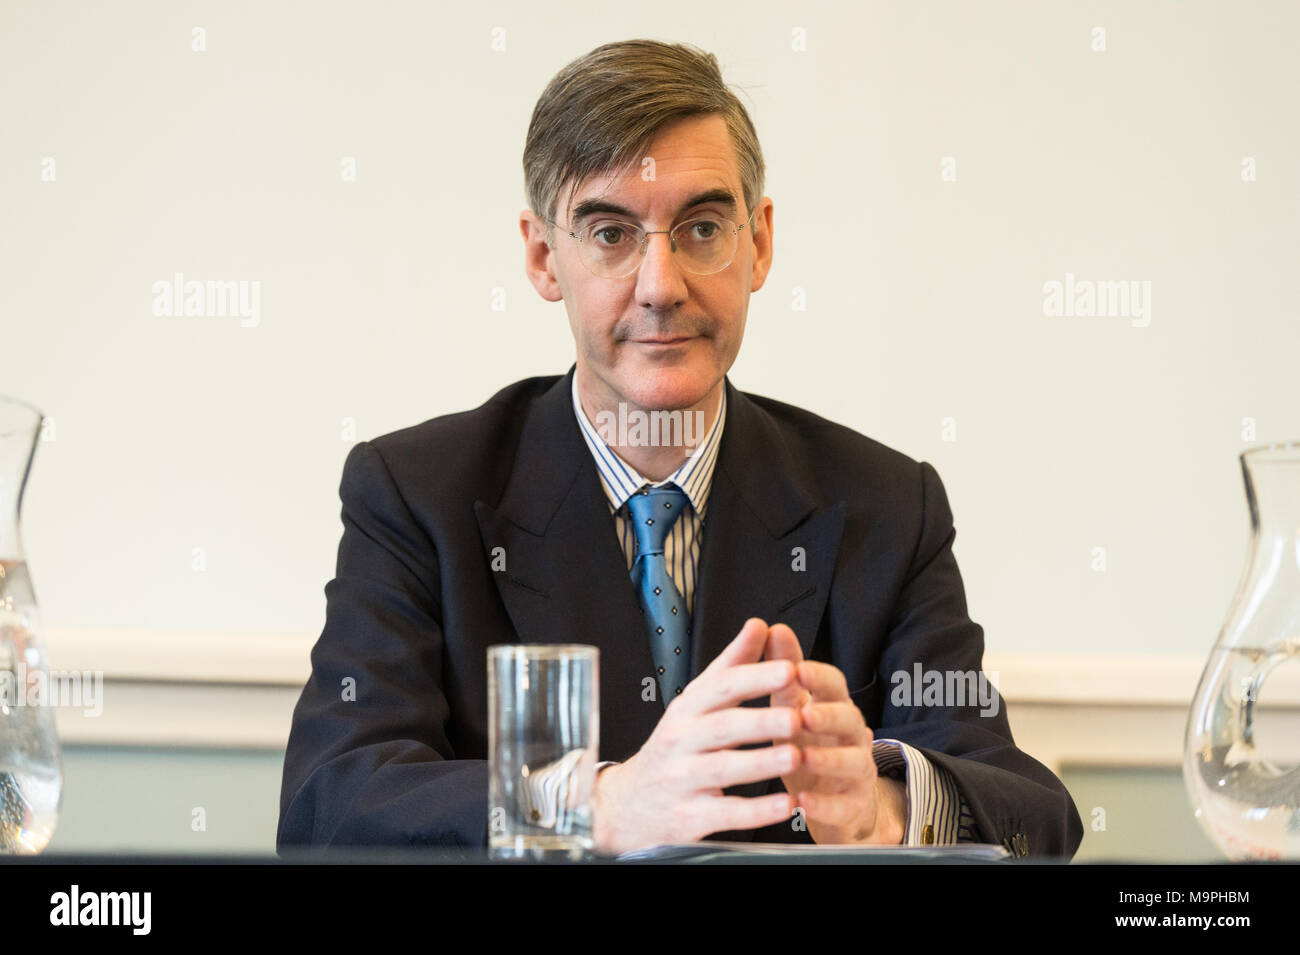 London, UK. 27th Mar, 2018. Brexit hard liner Jacob Rees-Mogg delivers a Brexit speech at the Leave Means Leave event. Credit: Raymond Tang/Alamy Live News - Stock Image